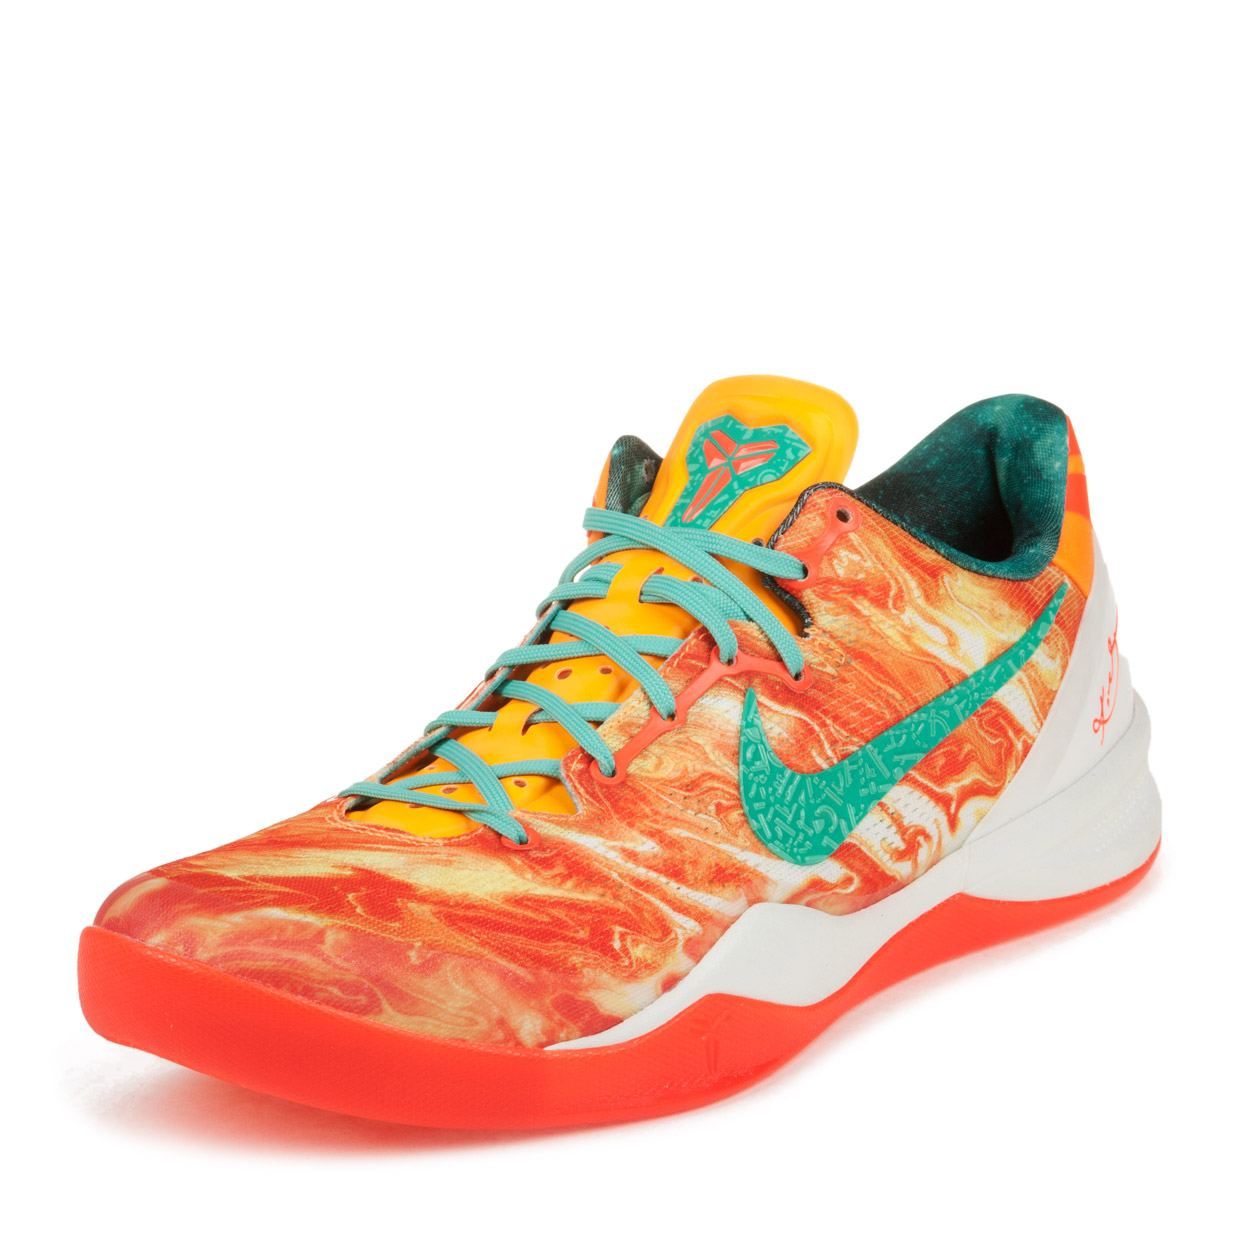 6cba400c5494 ... hot nike mens kobe 8 system sp pk with nike basketball as orange 583110  800 a464a